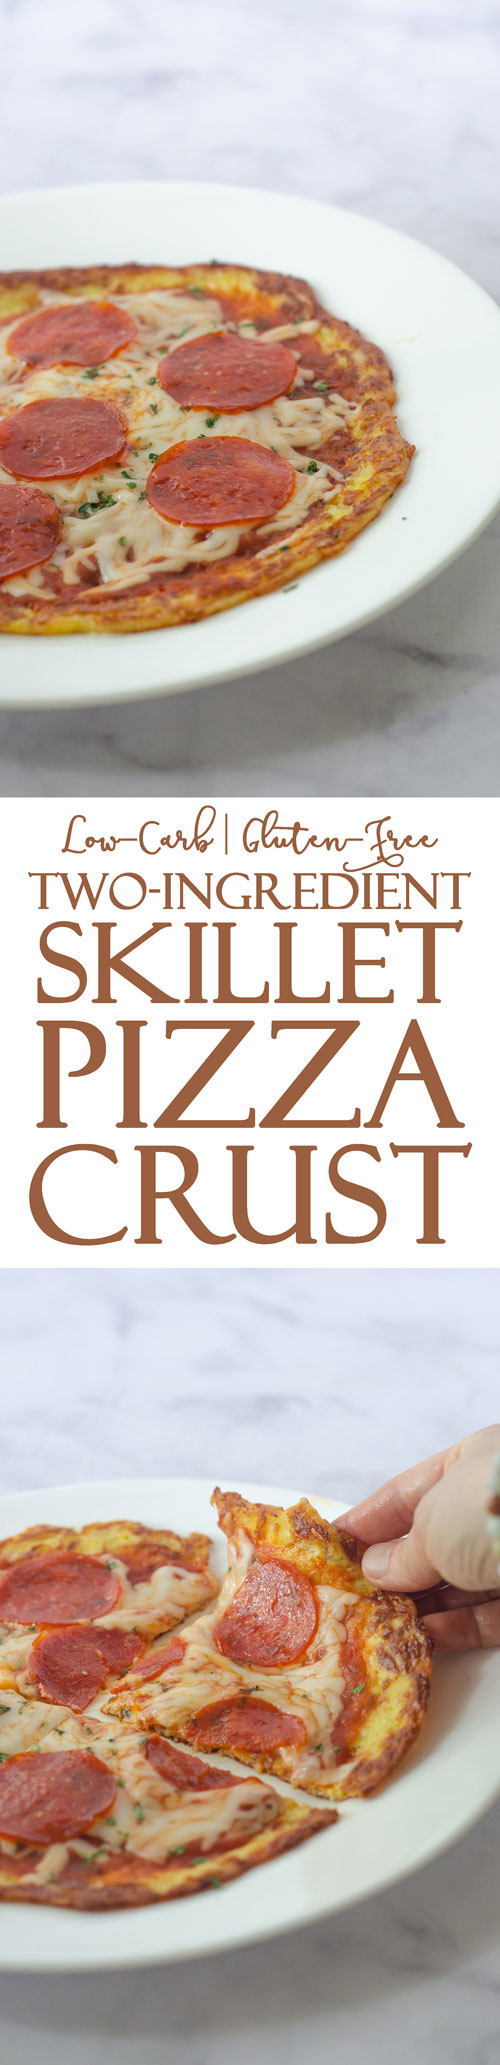 An incredibly simple two-ingredient skillet pizza recipe that is much simpler and faster than a traditional pizza. Made entirely on the stove, it's great for those without a working oven, or if you desire something a little different! Gluten-free, grain-free, low-carb, ketogenic.